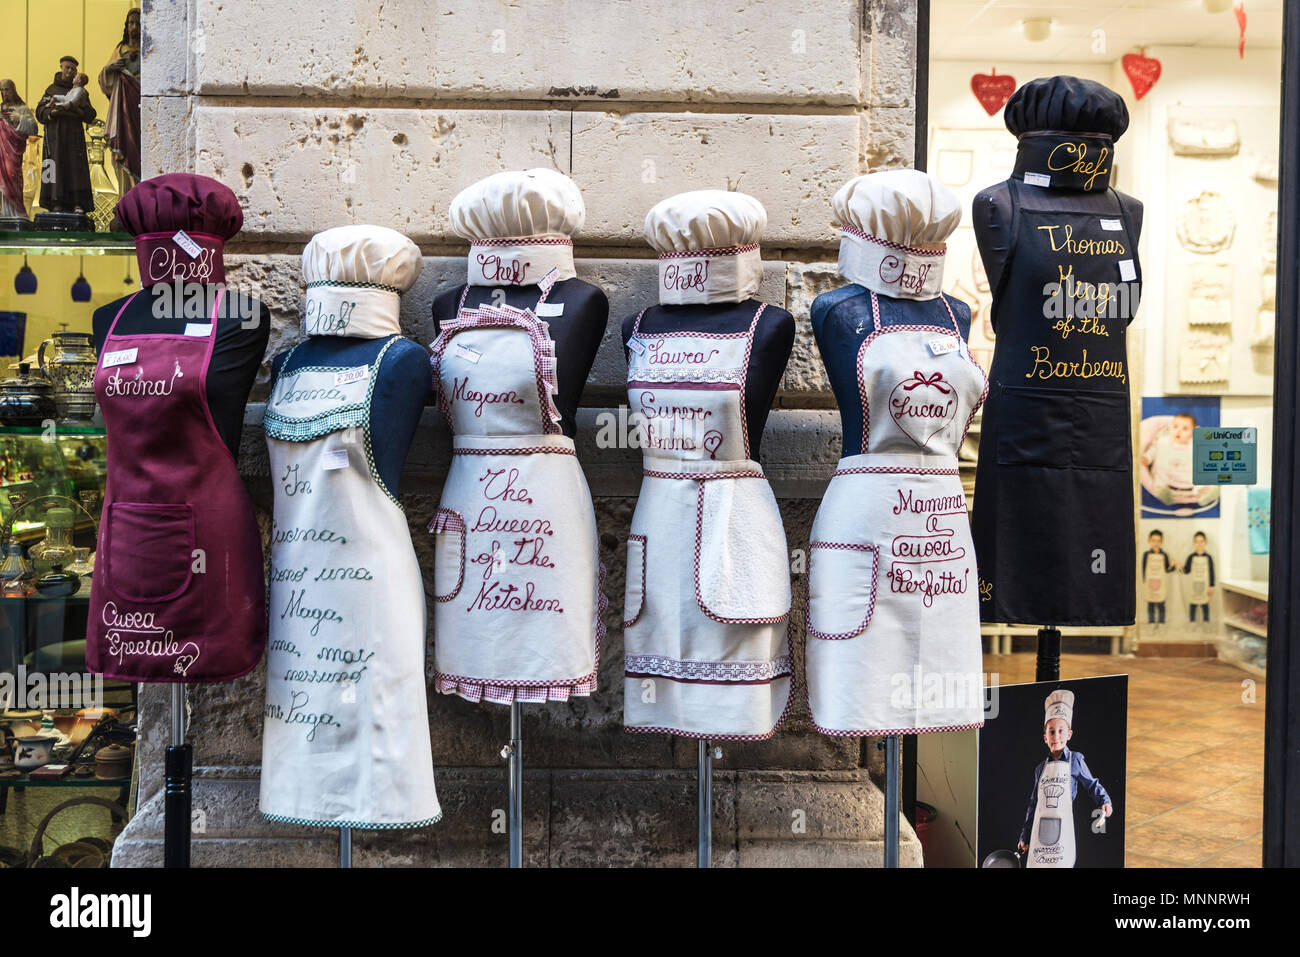 Siracusa, Italy - August 17, 2017: Aprons shop of Ricami Veronica in the old town of the historic city of Siracusa in Sicily, Italy - Stock Image